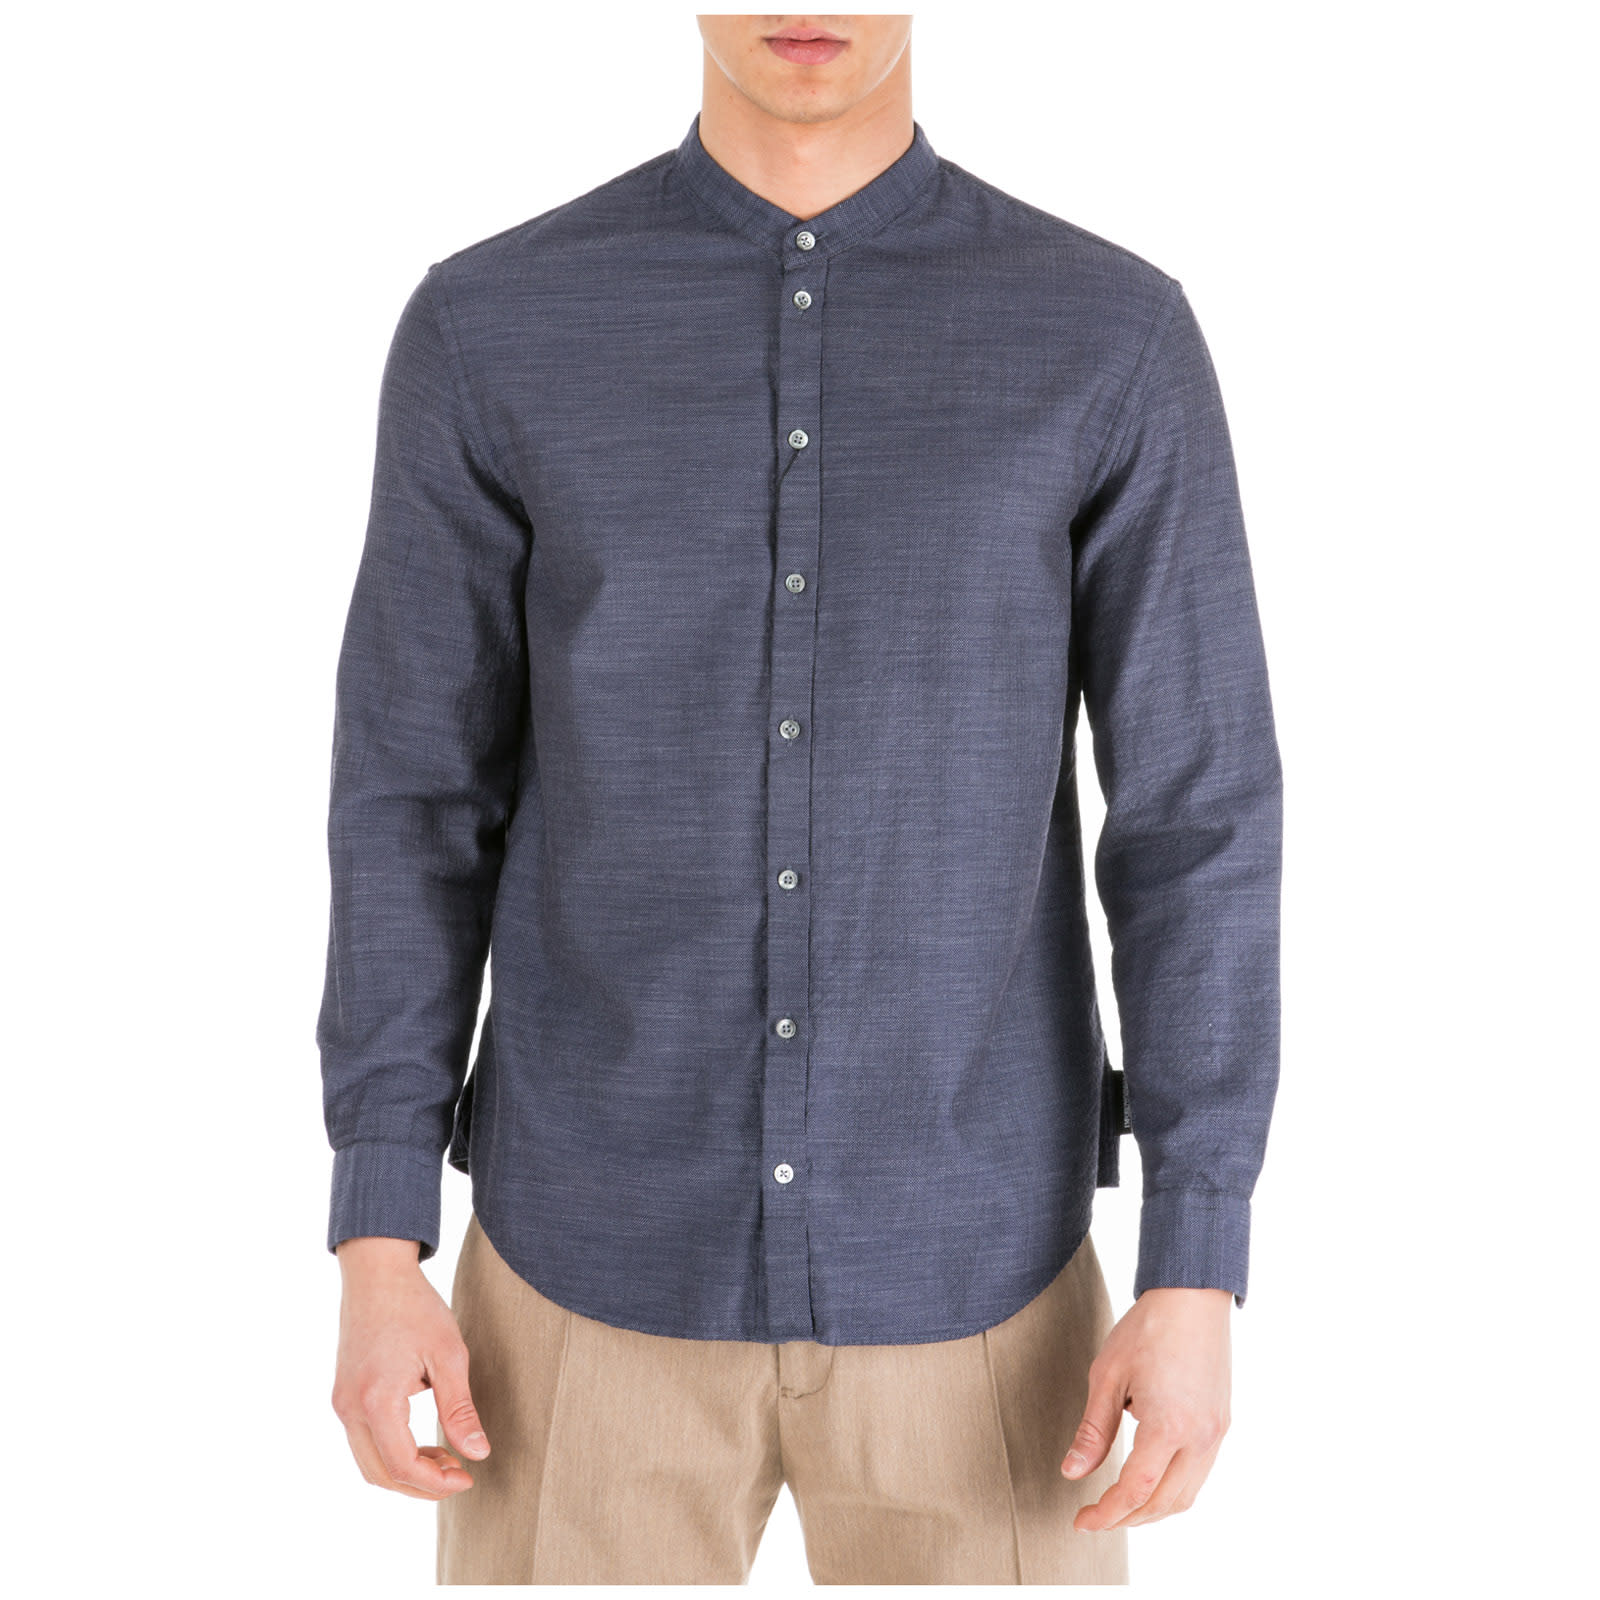 professional cheap performance sportswear Best price on the market at italist | Emporio Armani Emporio Armani Long  Sleeve Shirt Dress Shirt